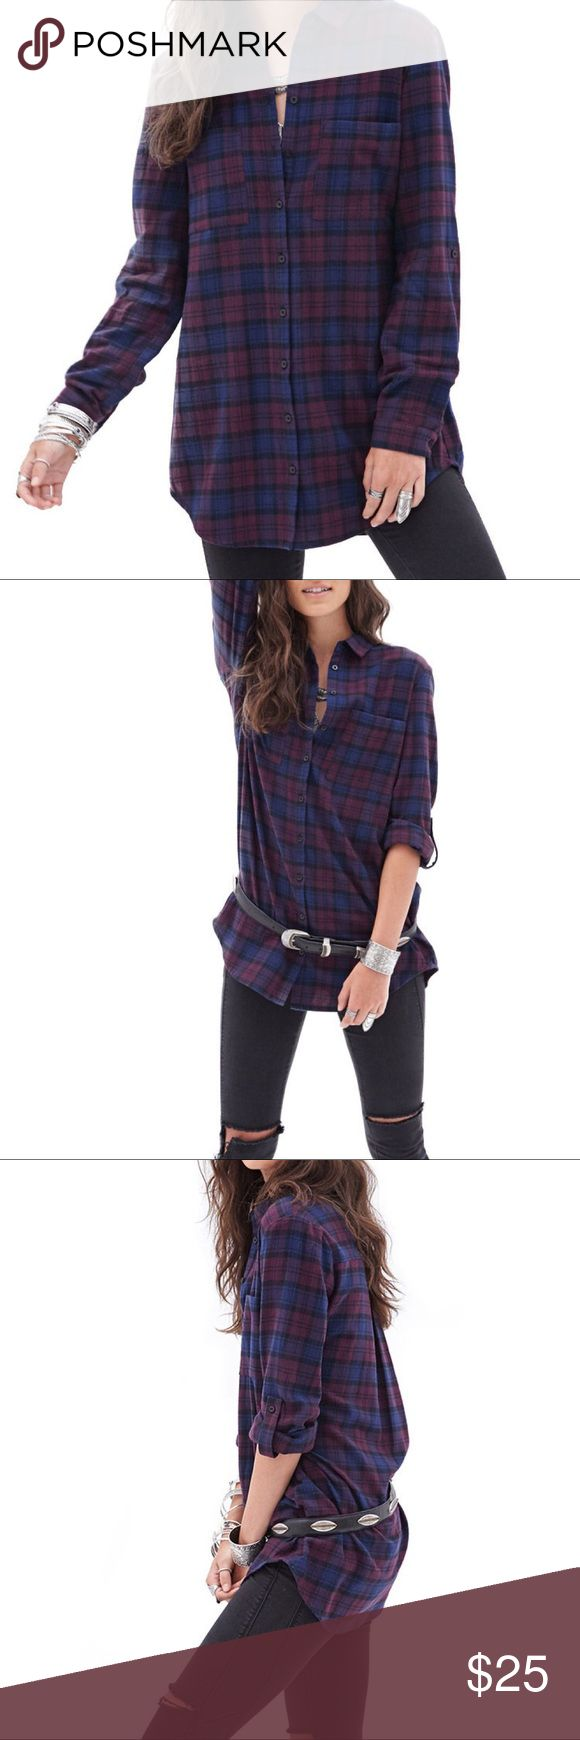 Forever 21 Oversized Flannel Top Offers welcome. New condition. 100% cotton. Warm flannel material. Dark blue, black, & purple, & maroon. I cut out all of the size tags on this, but I haven't worn it. It's a size medium, but fits loose & longer. The sleeves can be worn rolled up/buttoned to a 3/4 sleeve or worn long. Forever 21 Tops Button Down Shirts